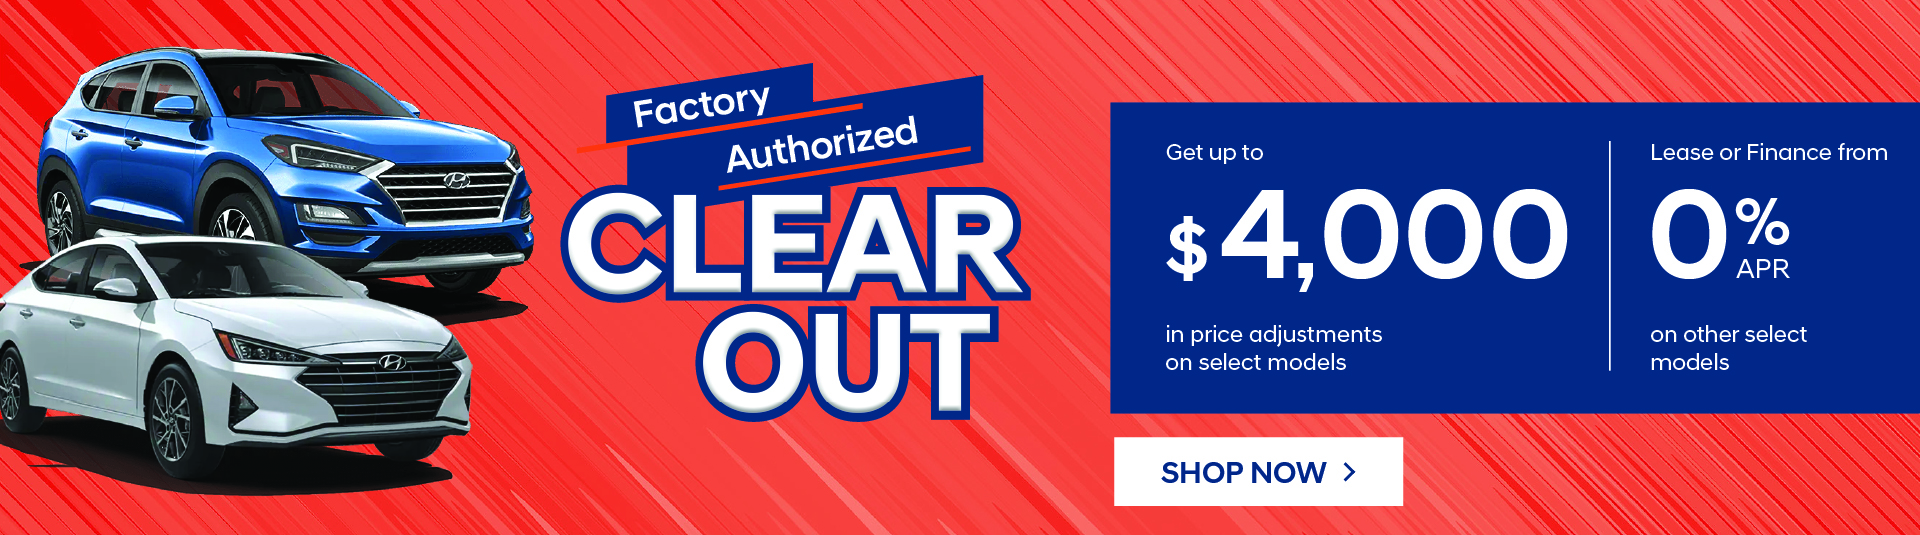 Hyundai Factory Clearout Event in Mississauga